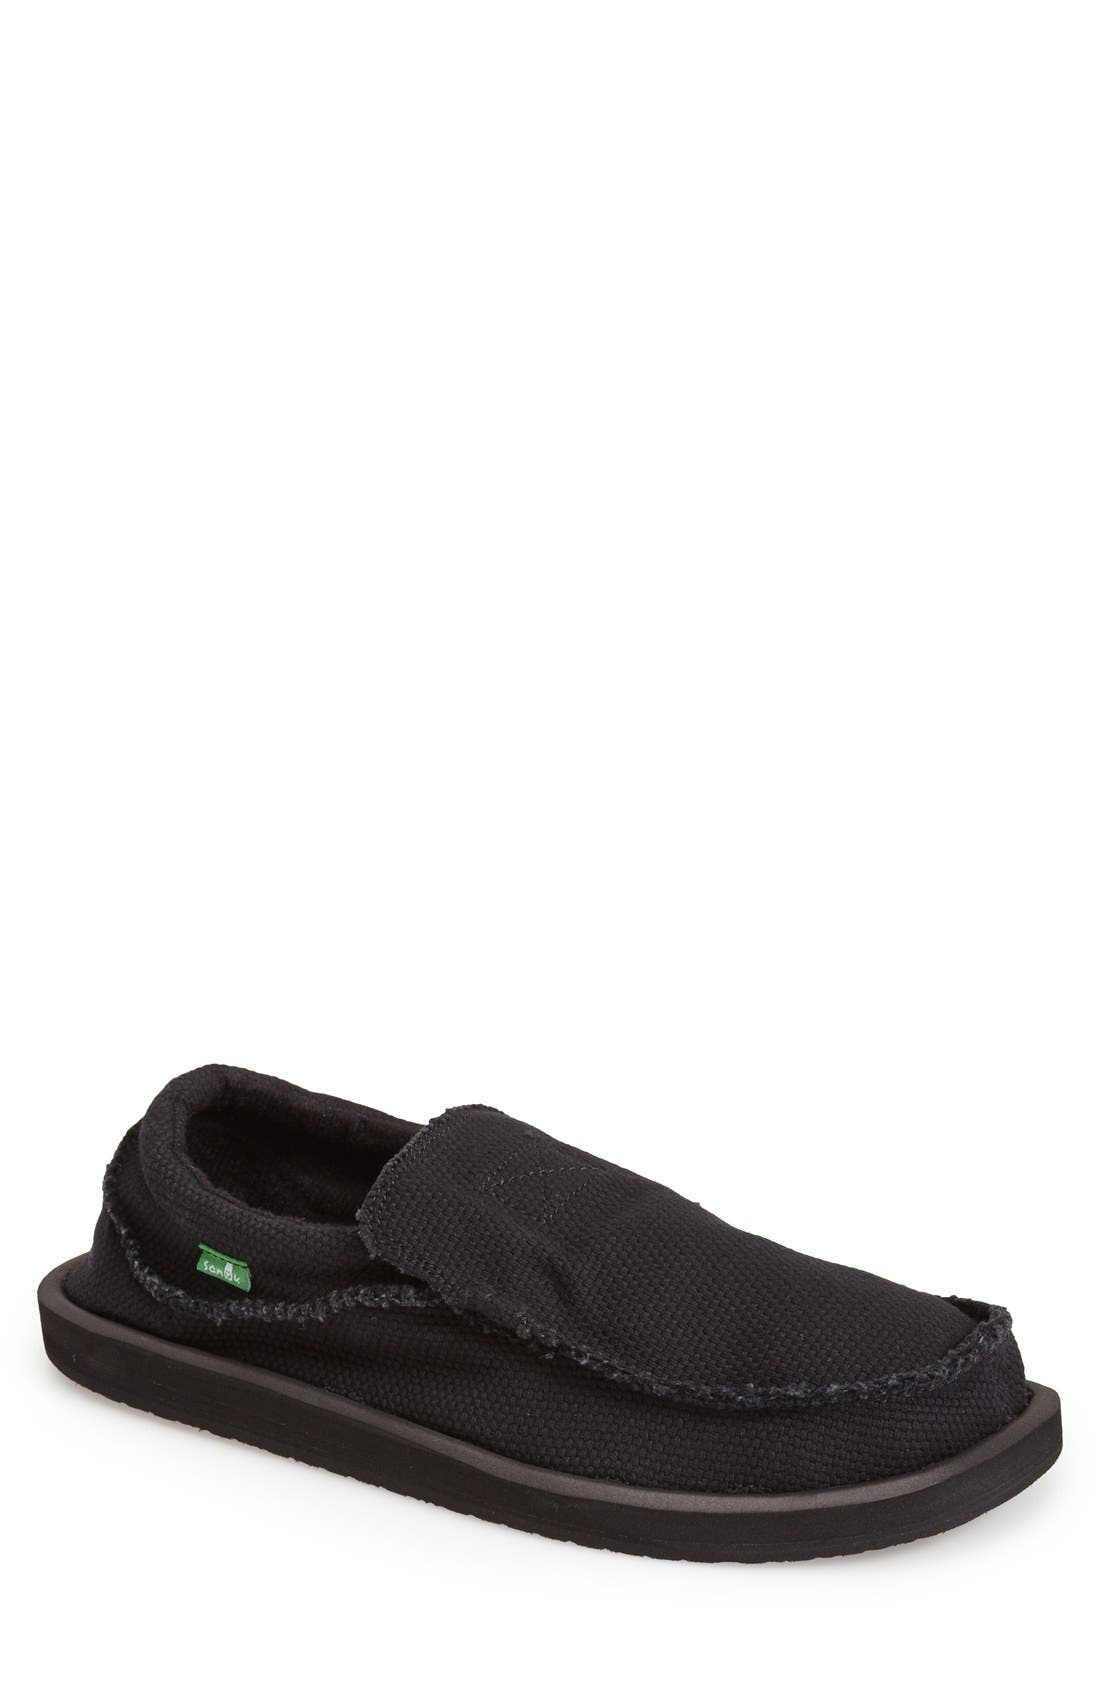 Alternate Image 1 Selected - Sanuk 'Chiba' Slip-On (Men)